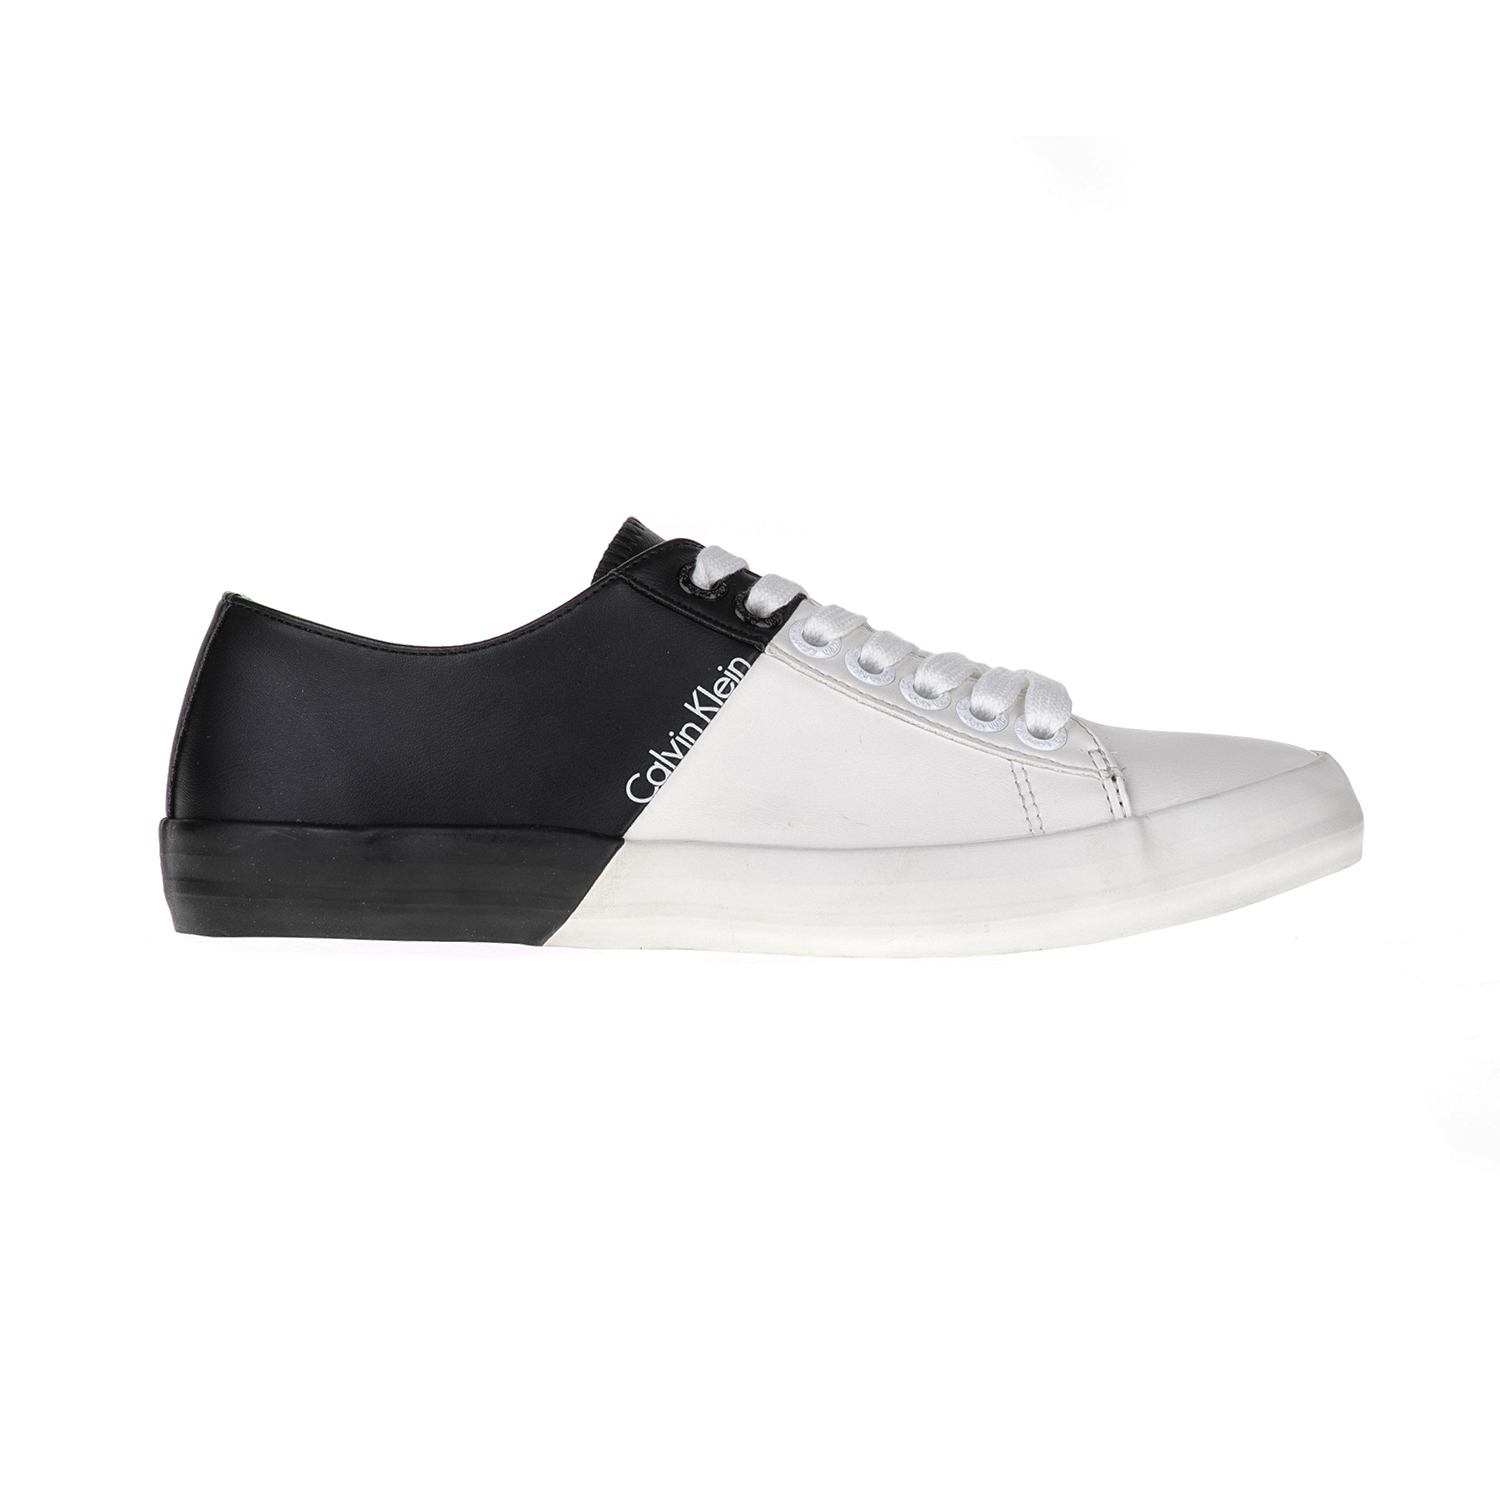 CALVIN KLEIN JEANS – Ανδρικά sneakers BYRON λευκά-μαύρα